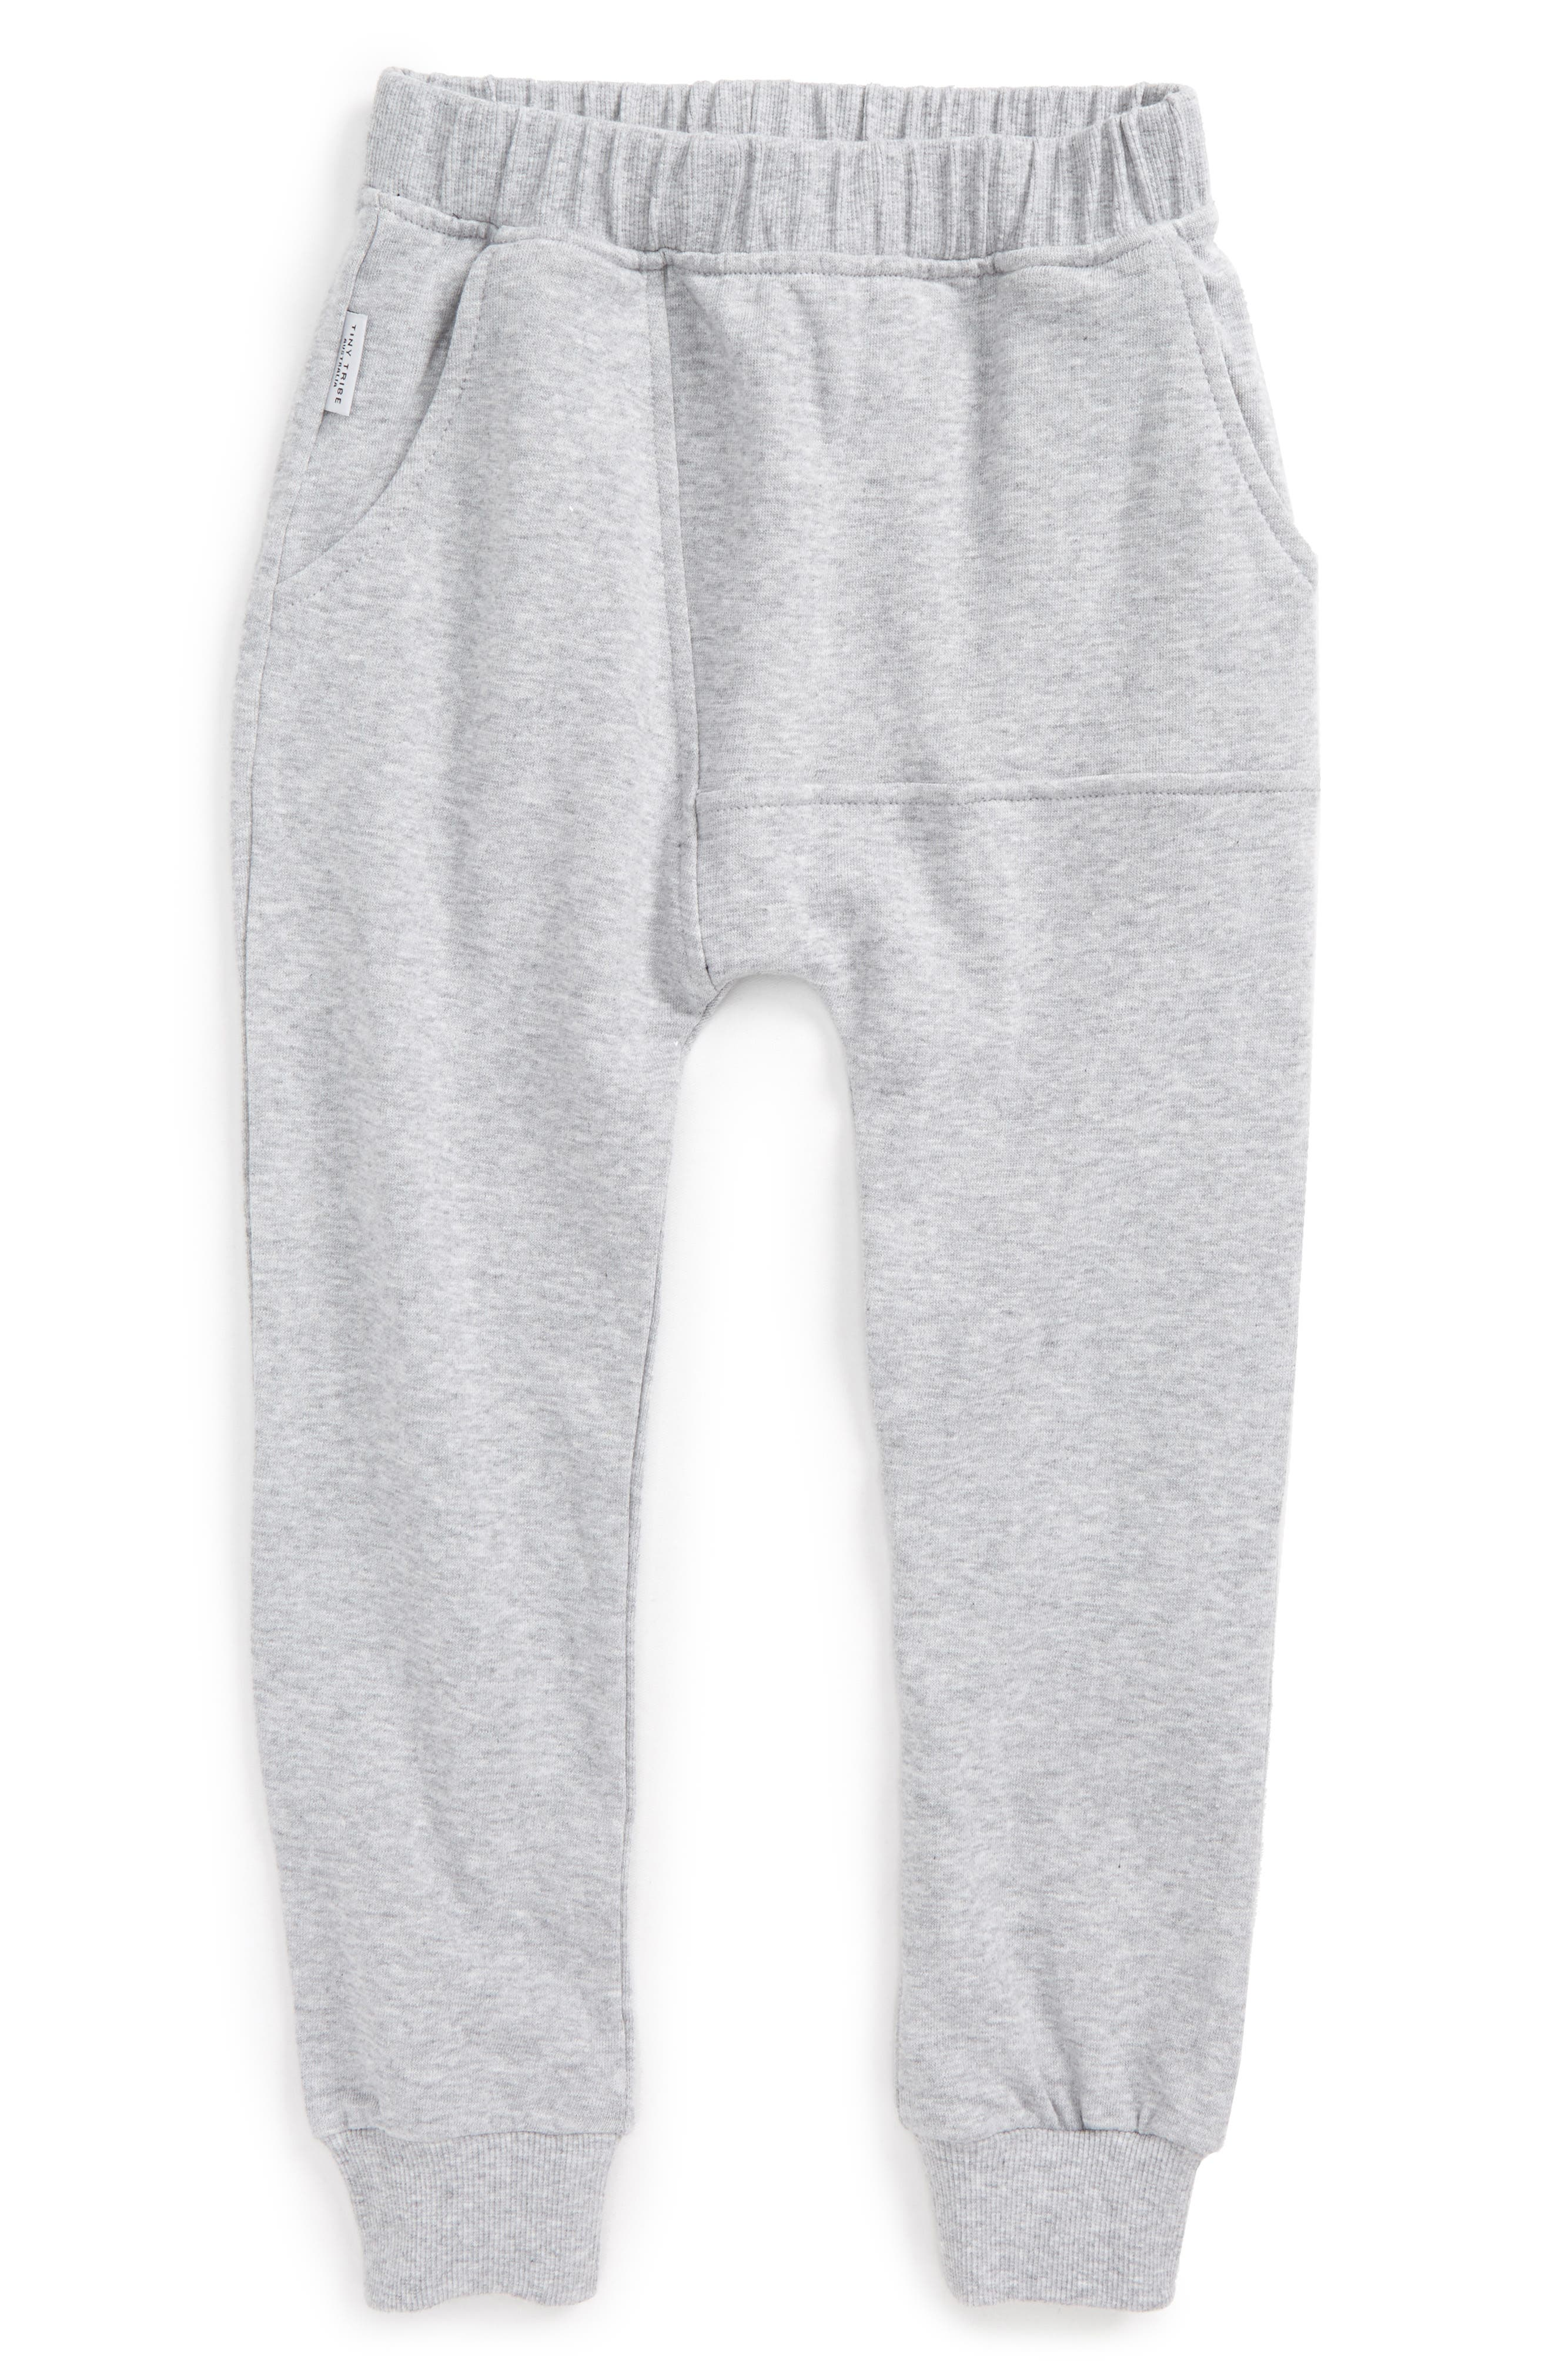 Alternate Image 1 Selected - Tiny Tribe Sweatpants (Little Boys)